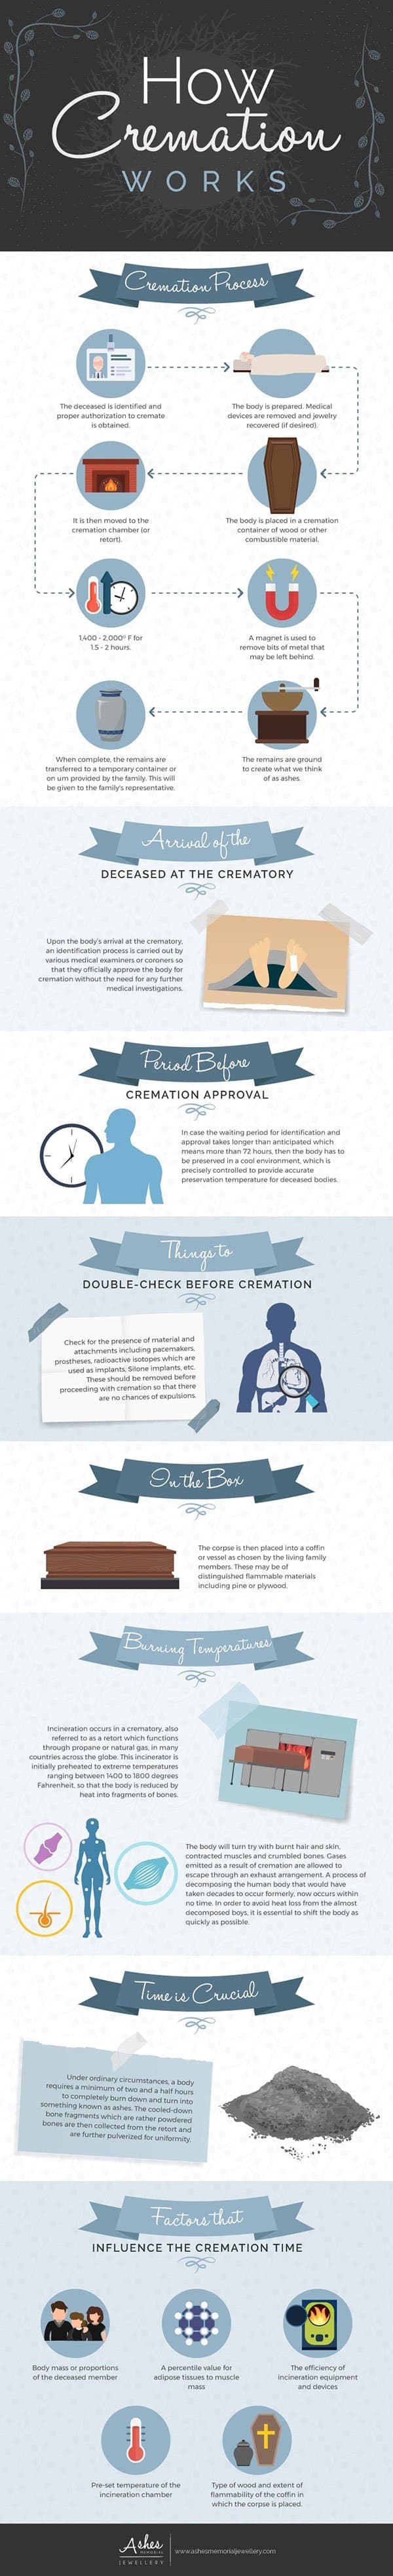 How Does The Cremation Process Work